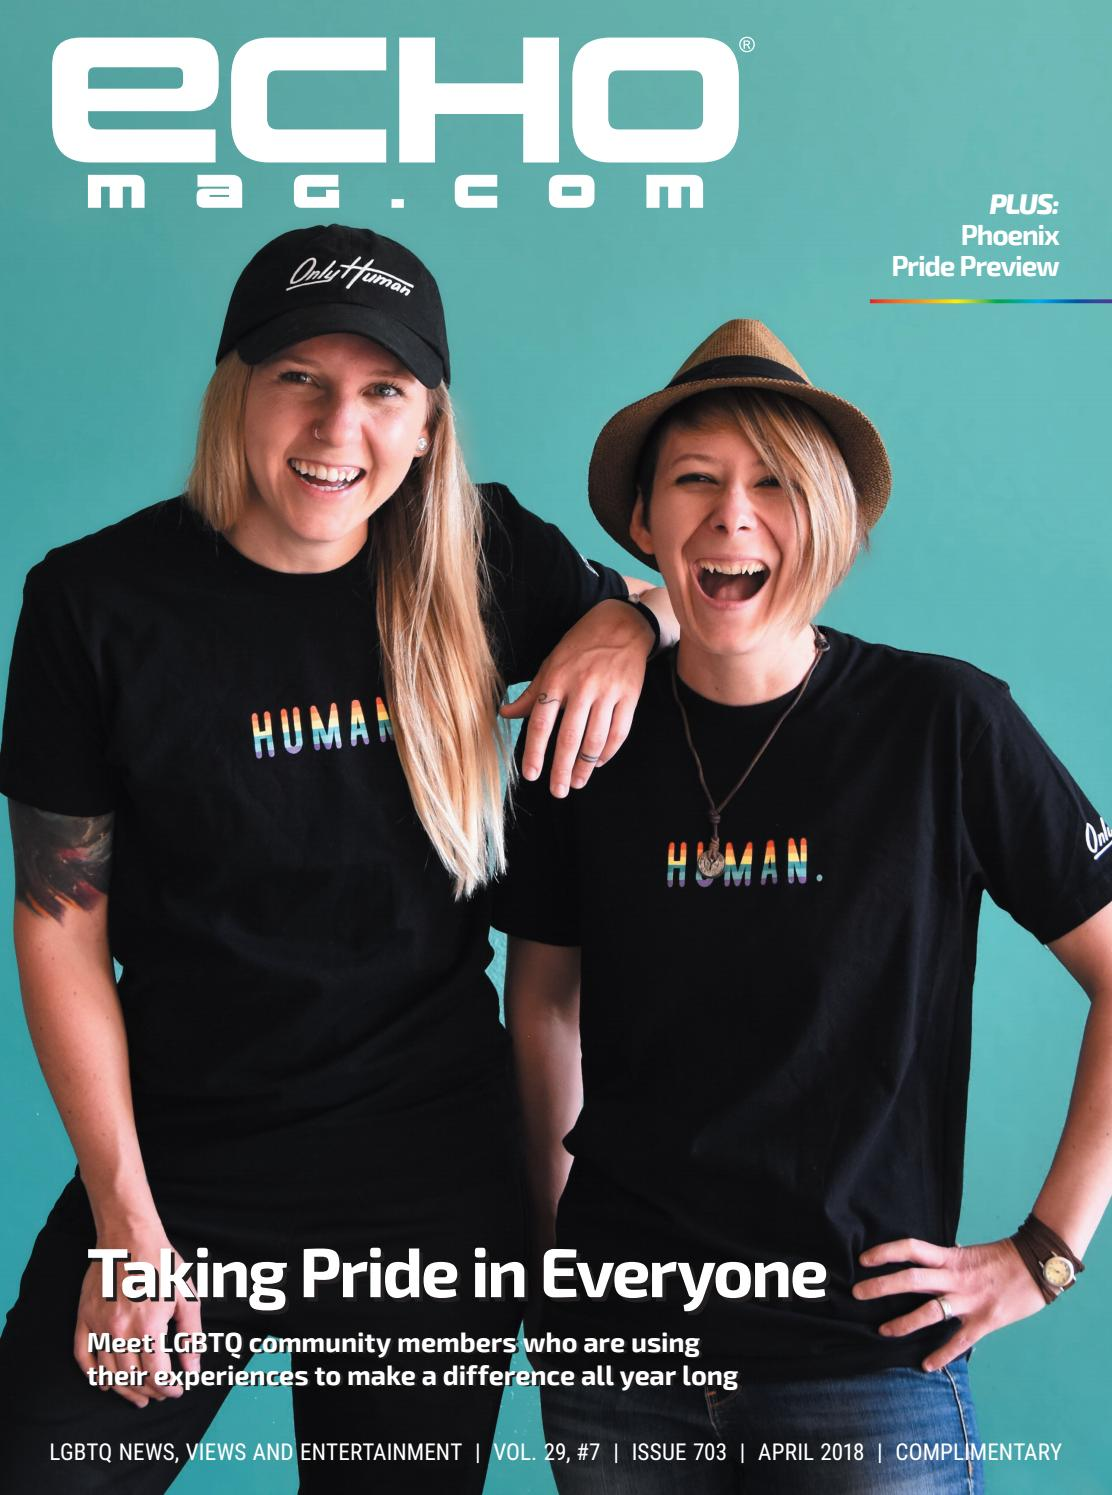 b68780abac Echo Magazine - Arizona LGBTQ Lifestyle - April 2018 by Echo Magazine -  issuu